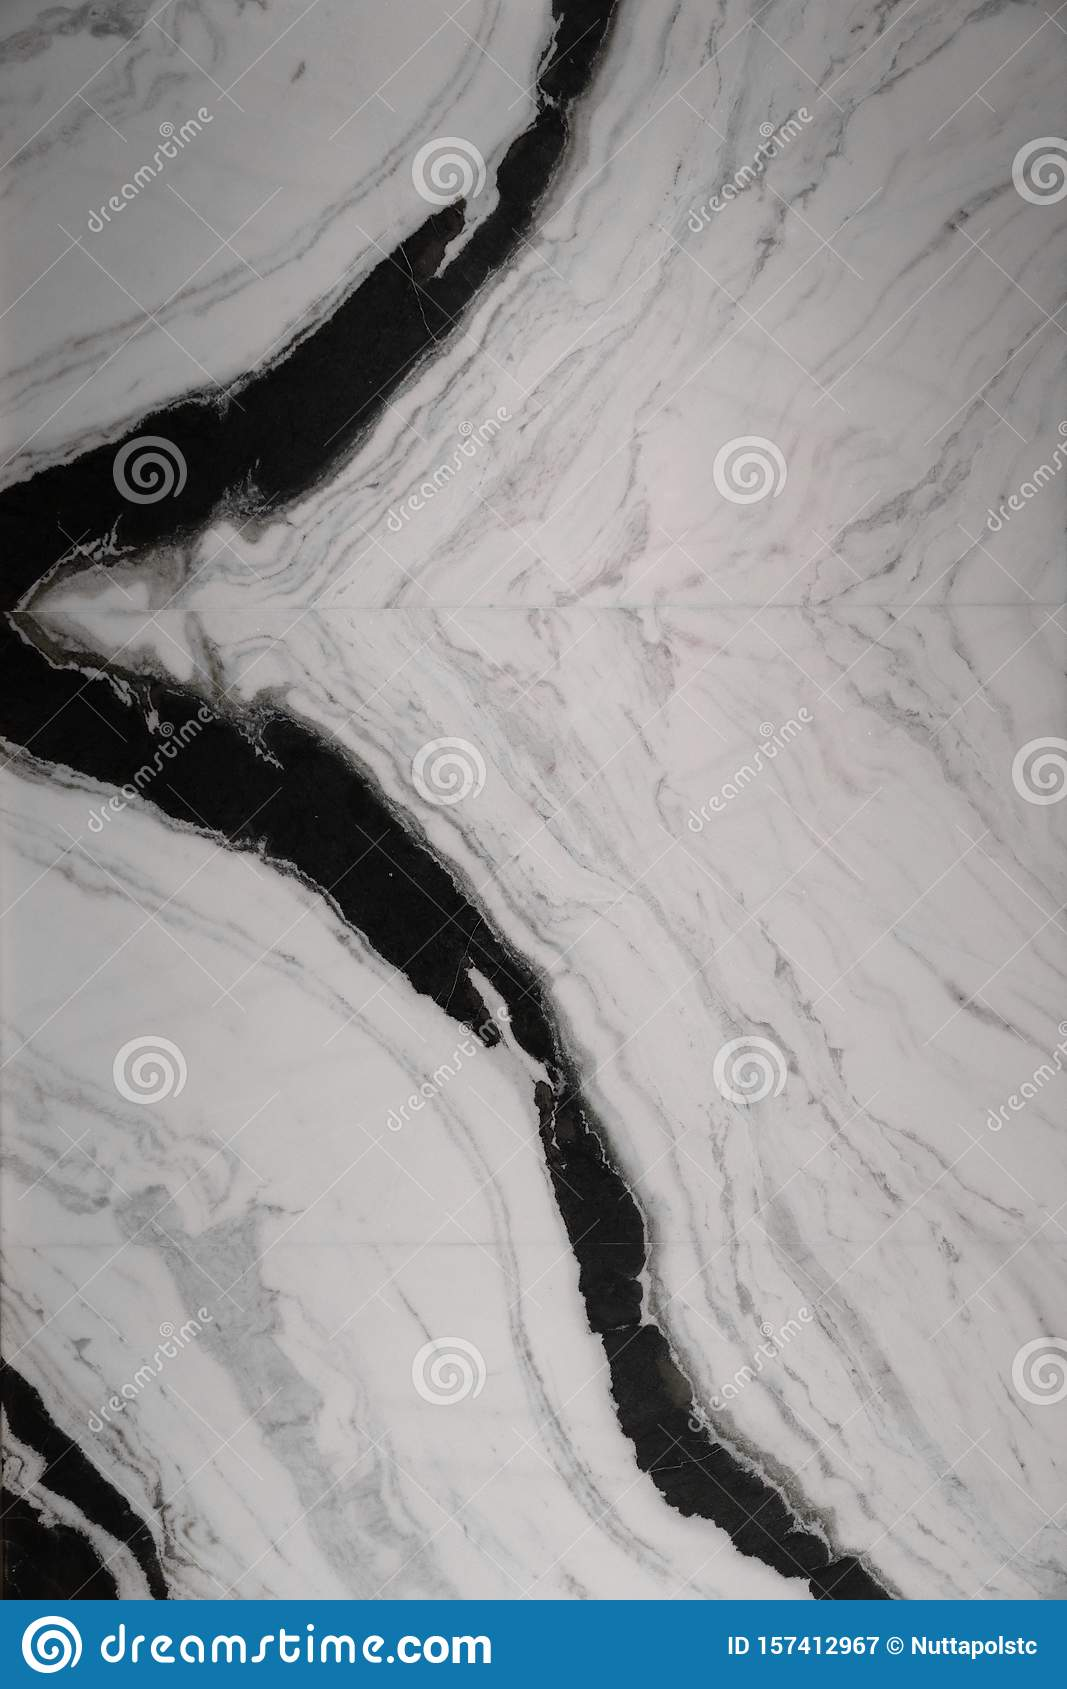 White Marble Seamless : white, marble, seamless, White, Panda, Natural, Marble, Texture, Match, Pattern, Seamless, Stock, Image, Concept,, Granite:, 157412967